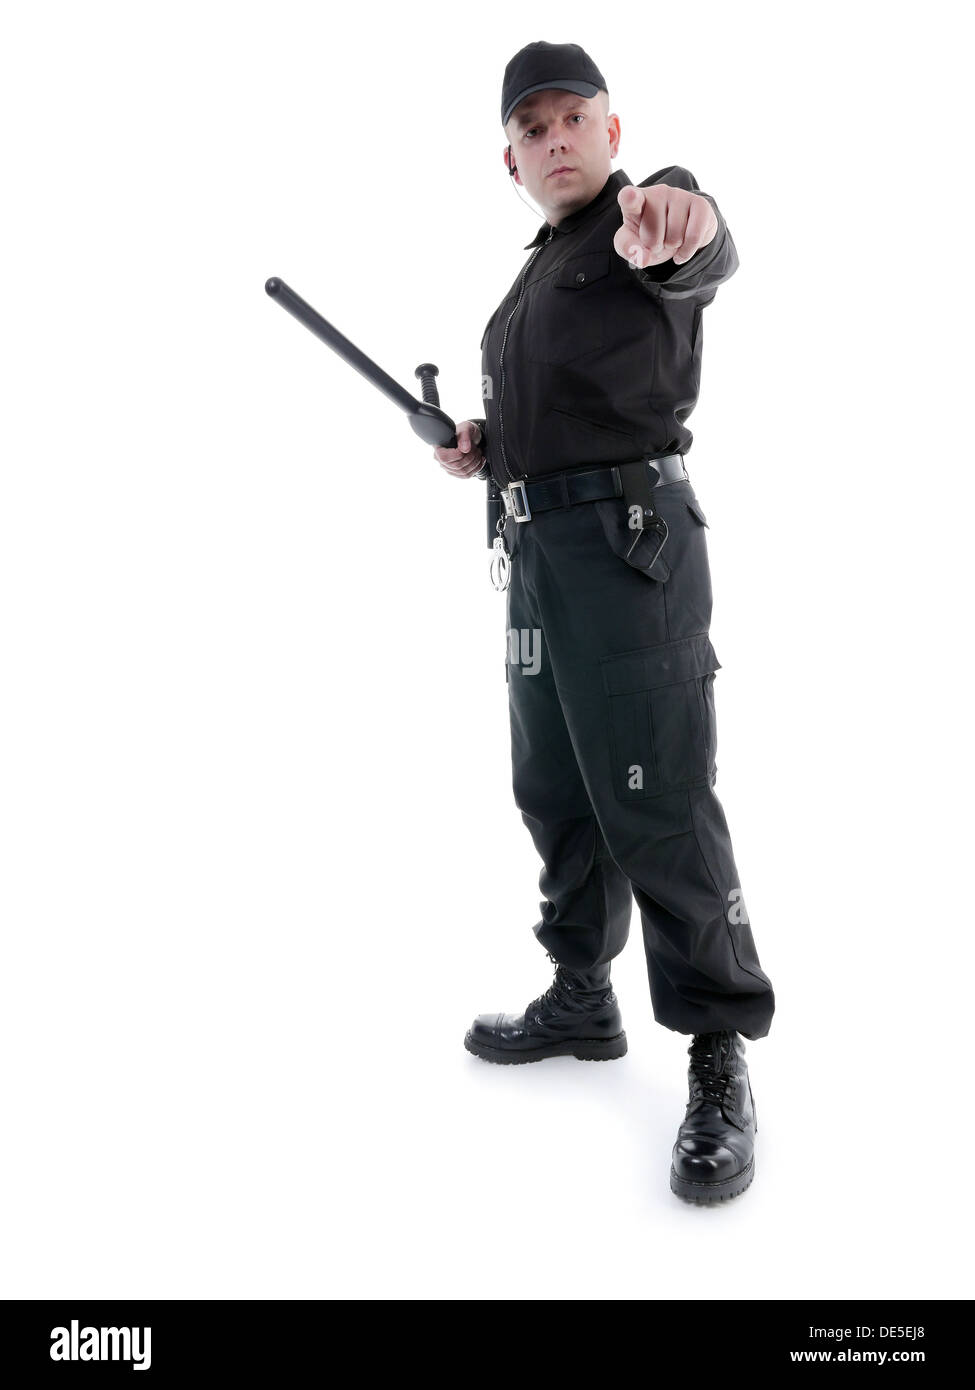 Policeman wearing black uniform pointing in ordering manner - Stock Image